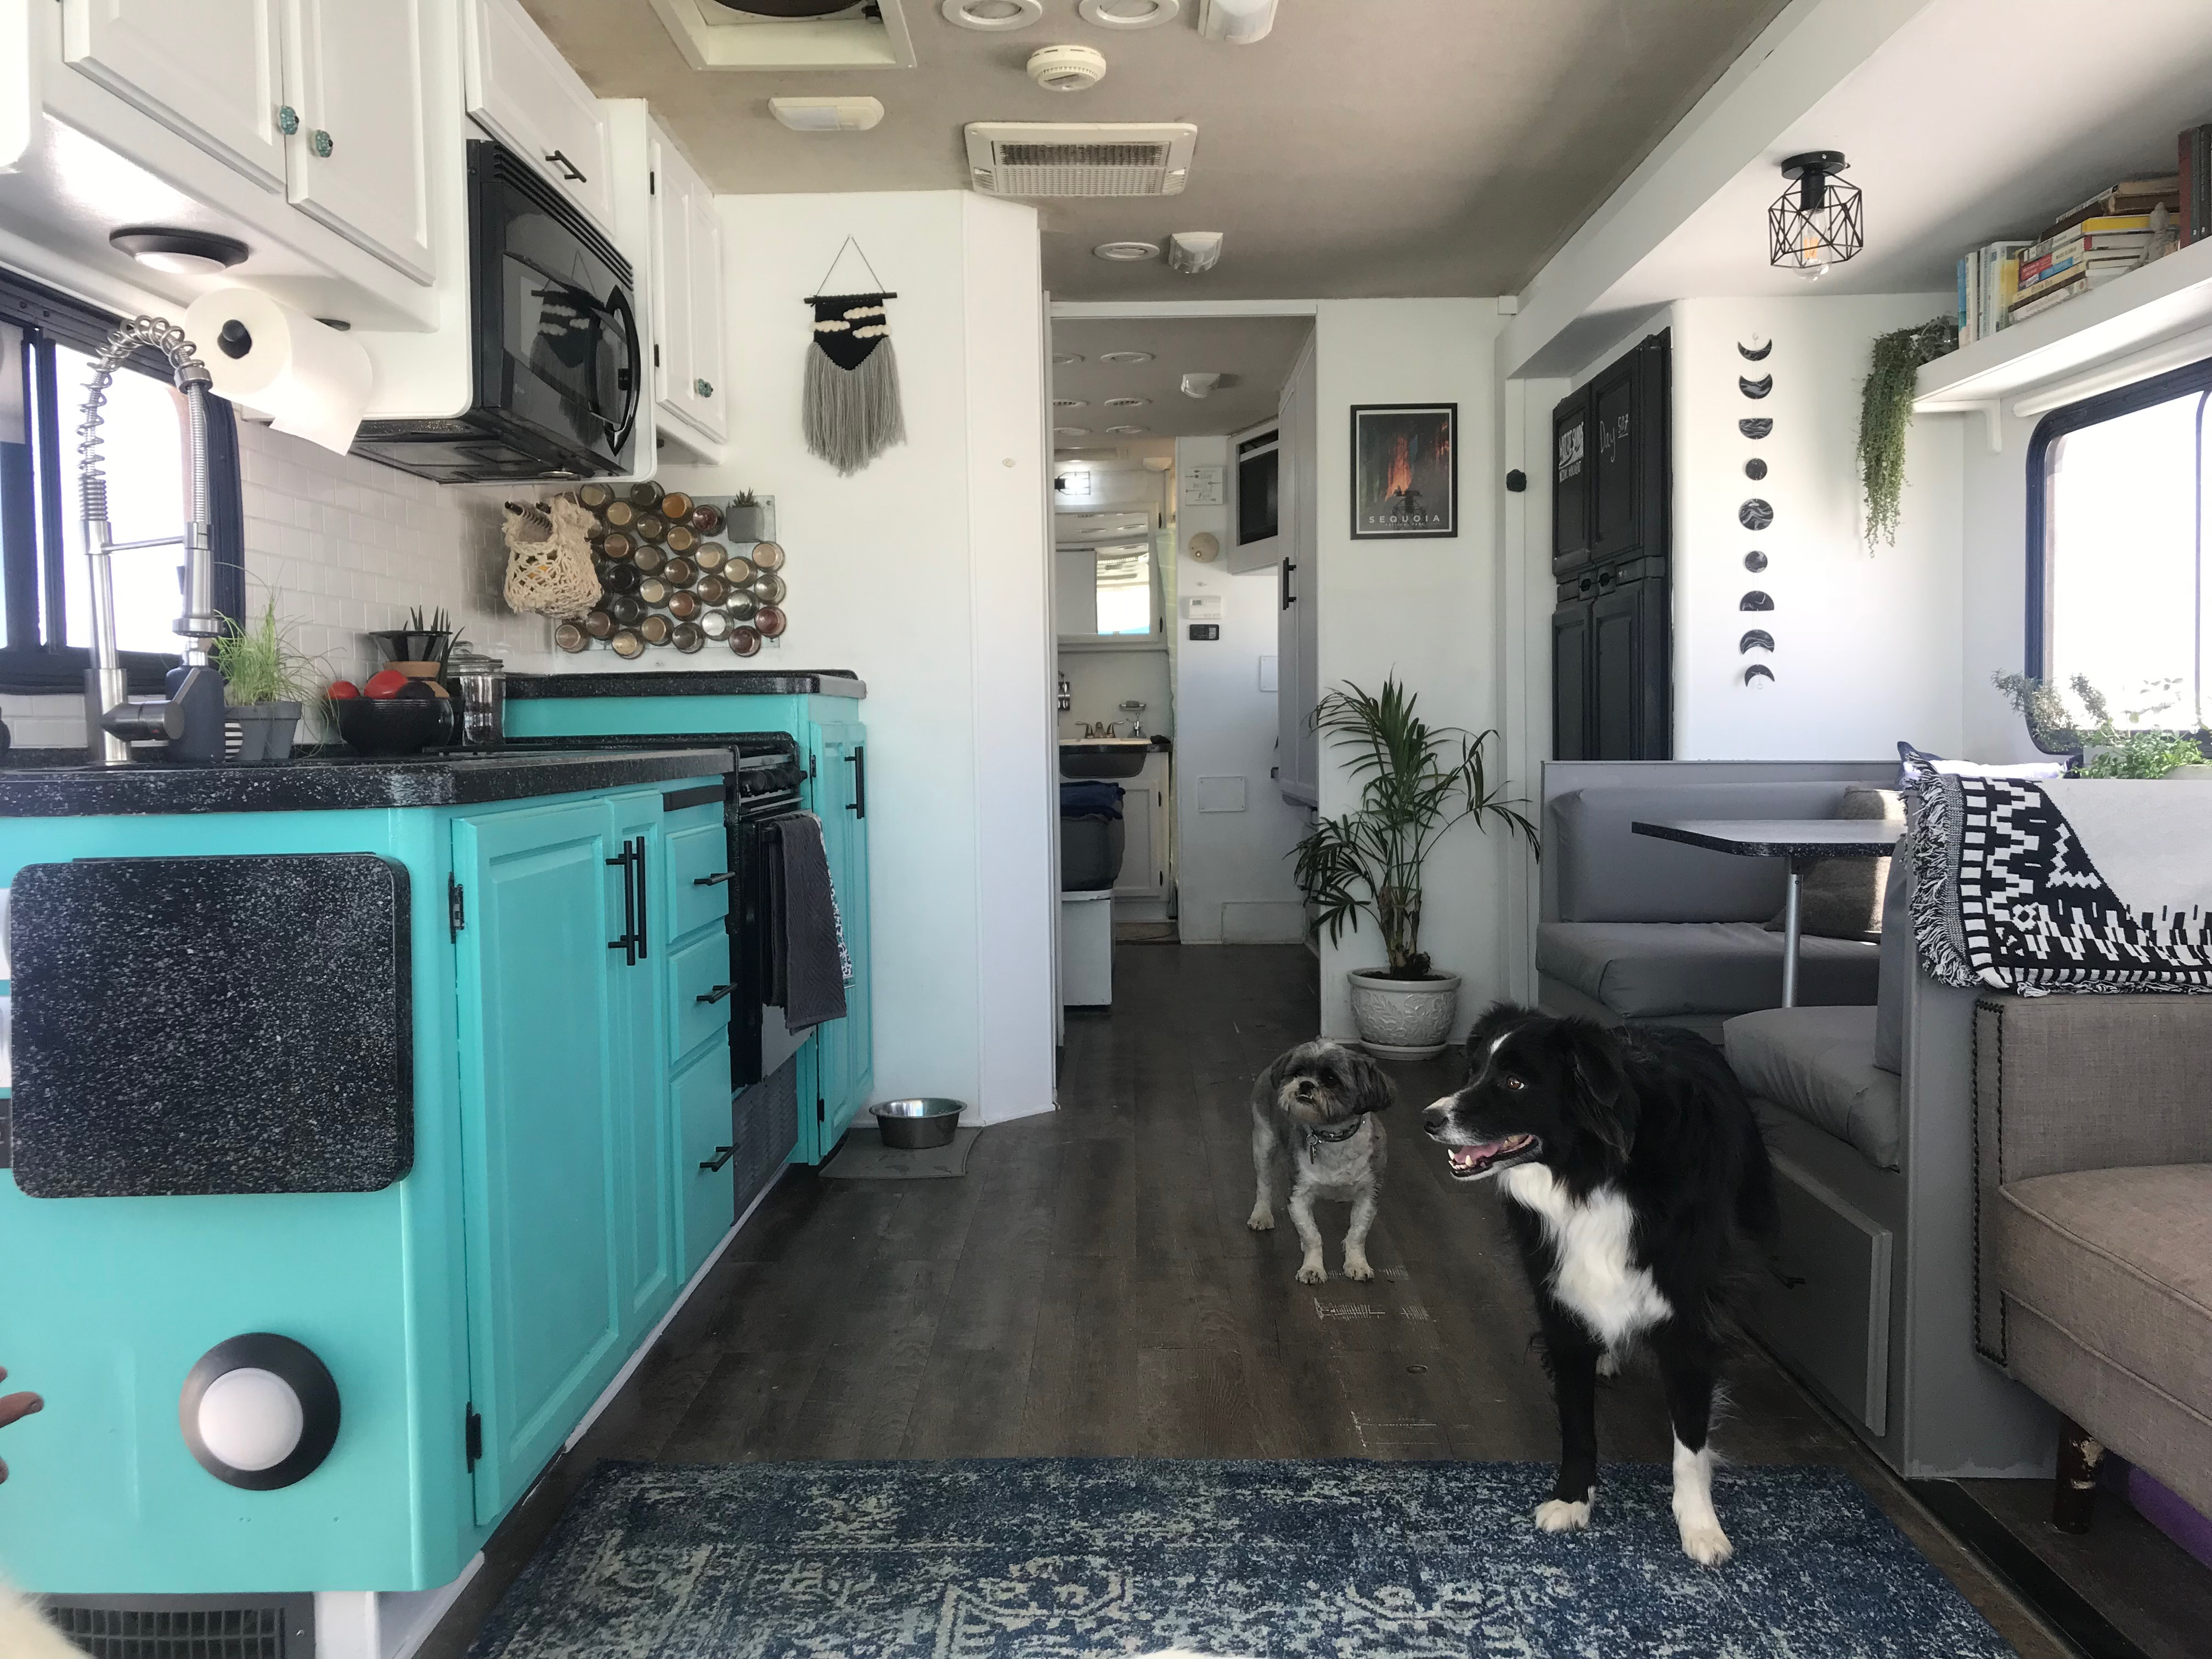 Clean your RV frequently